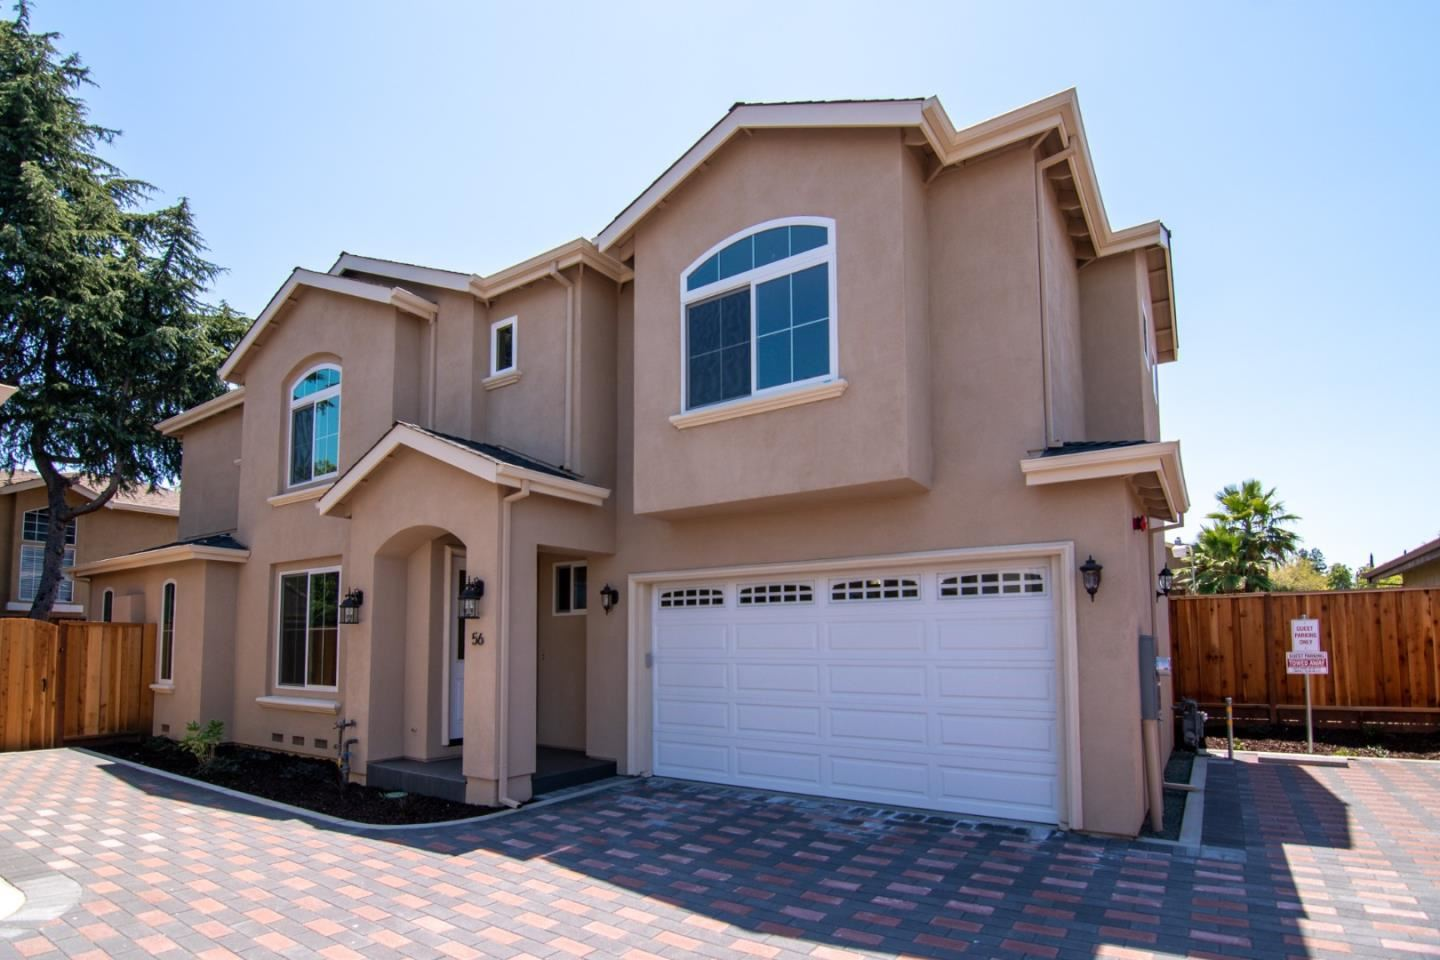 Photo for 56 Shelley, CAMPBELL, CA 95008 (MLS # ML81818393)